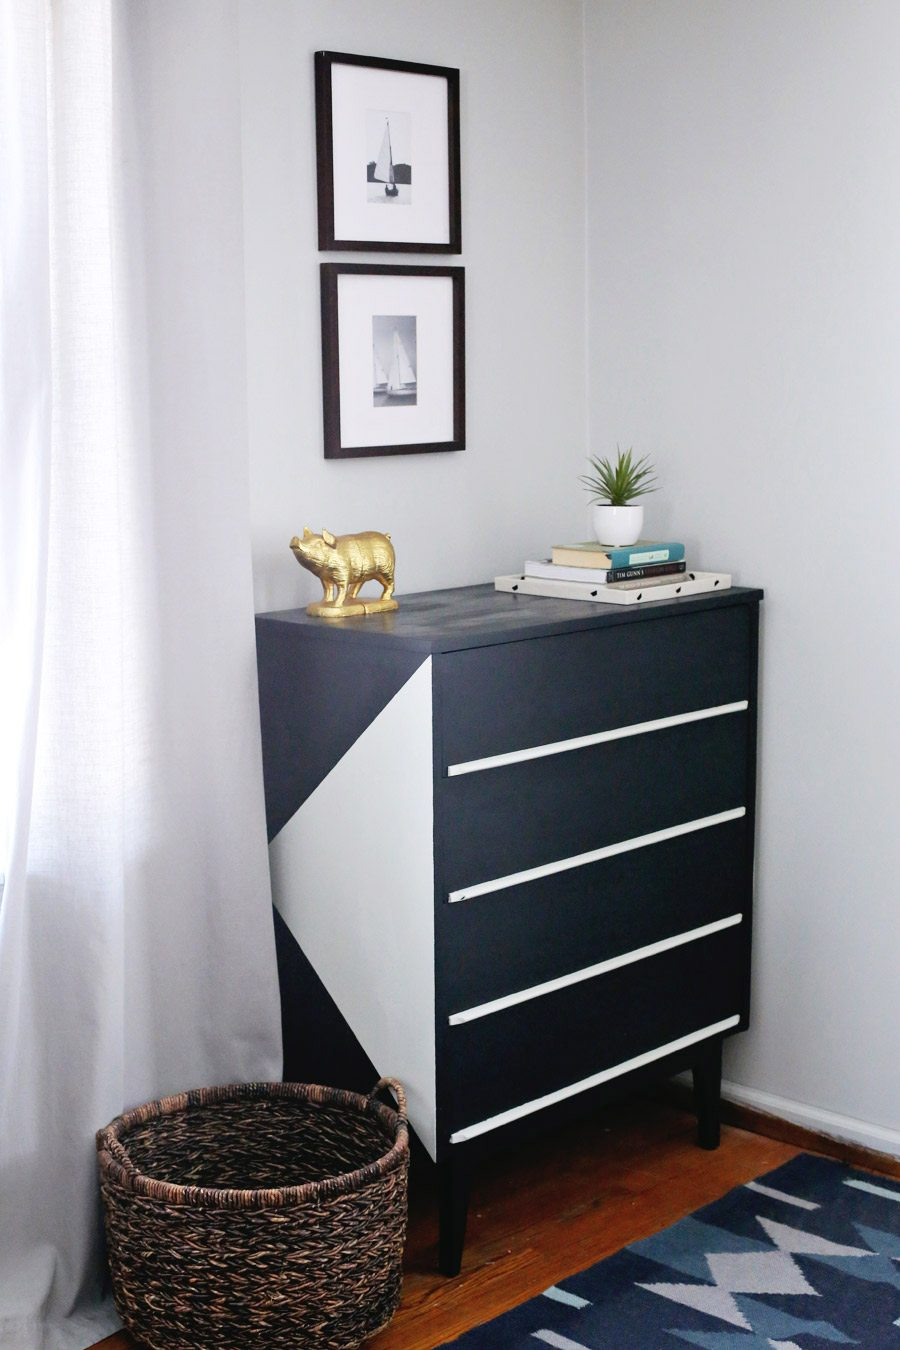 DIY Painted Dresser Makeover from @cydconverse